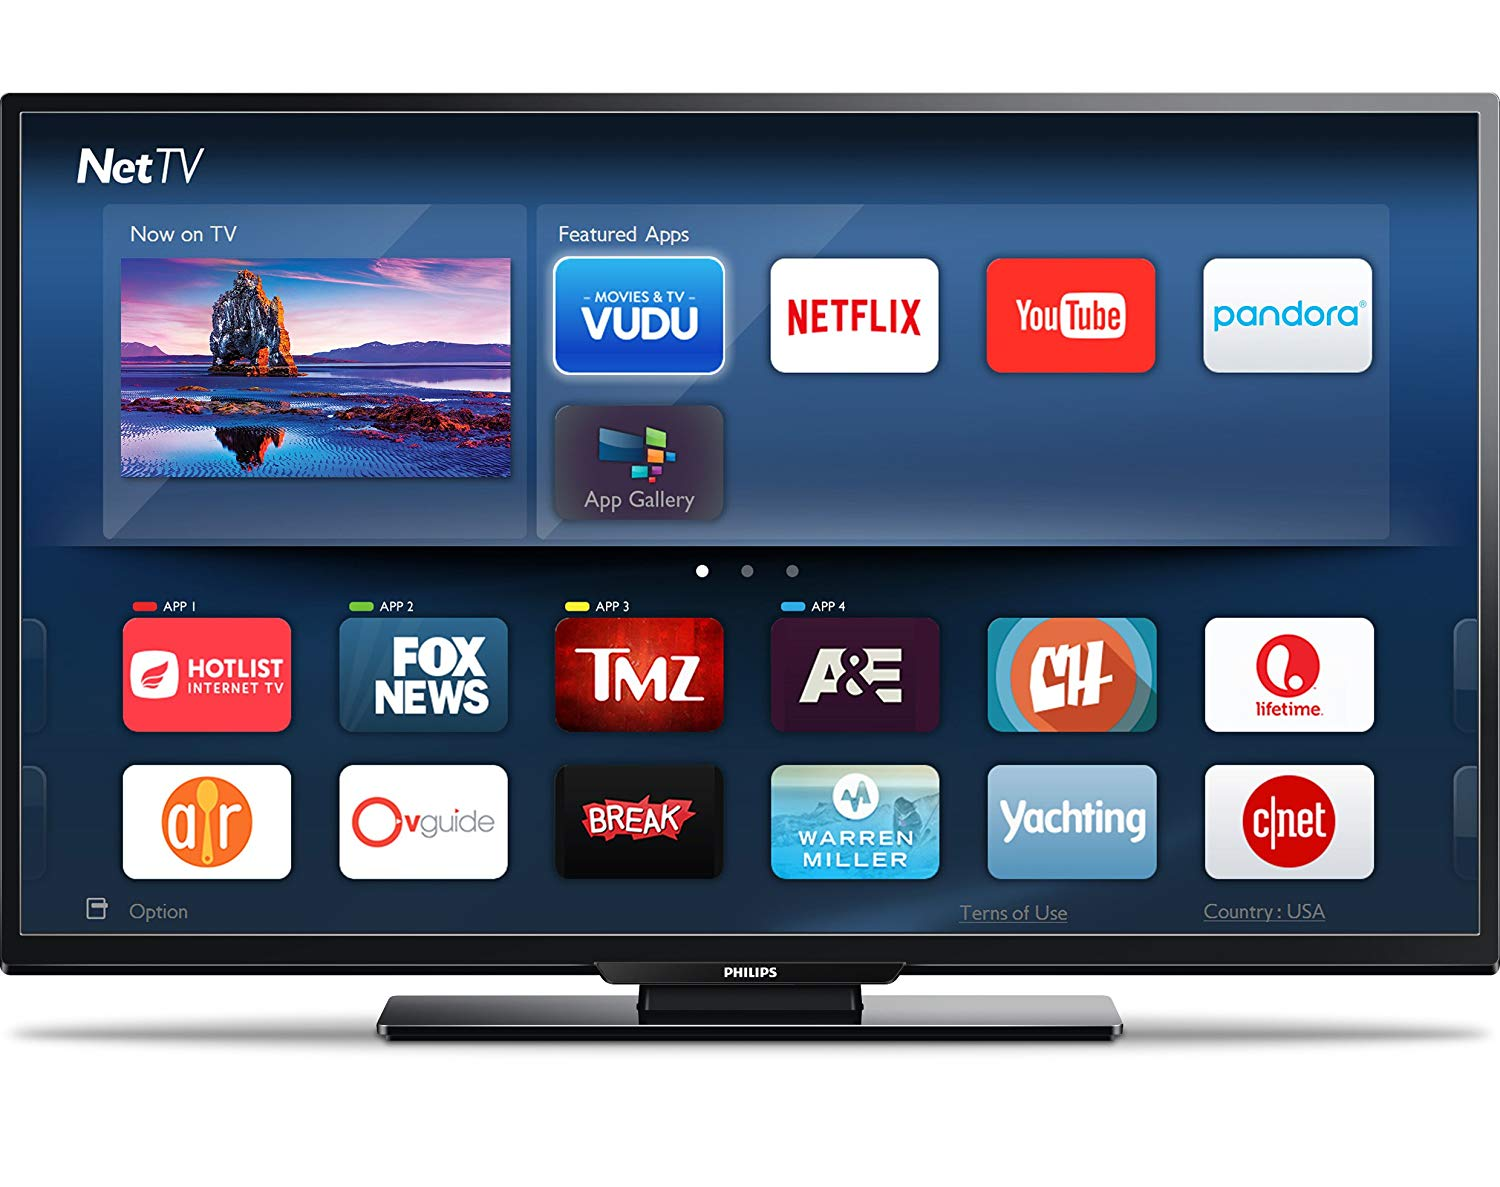 An image of Philips 55PFL5402 55-Inch HDR 4K LED TV with Motion Rate 120